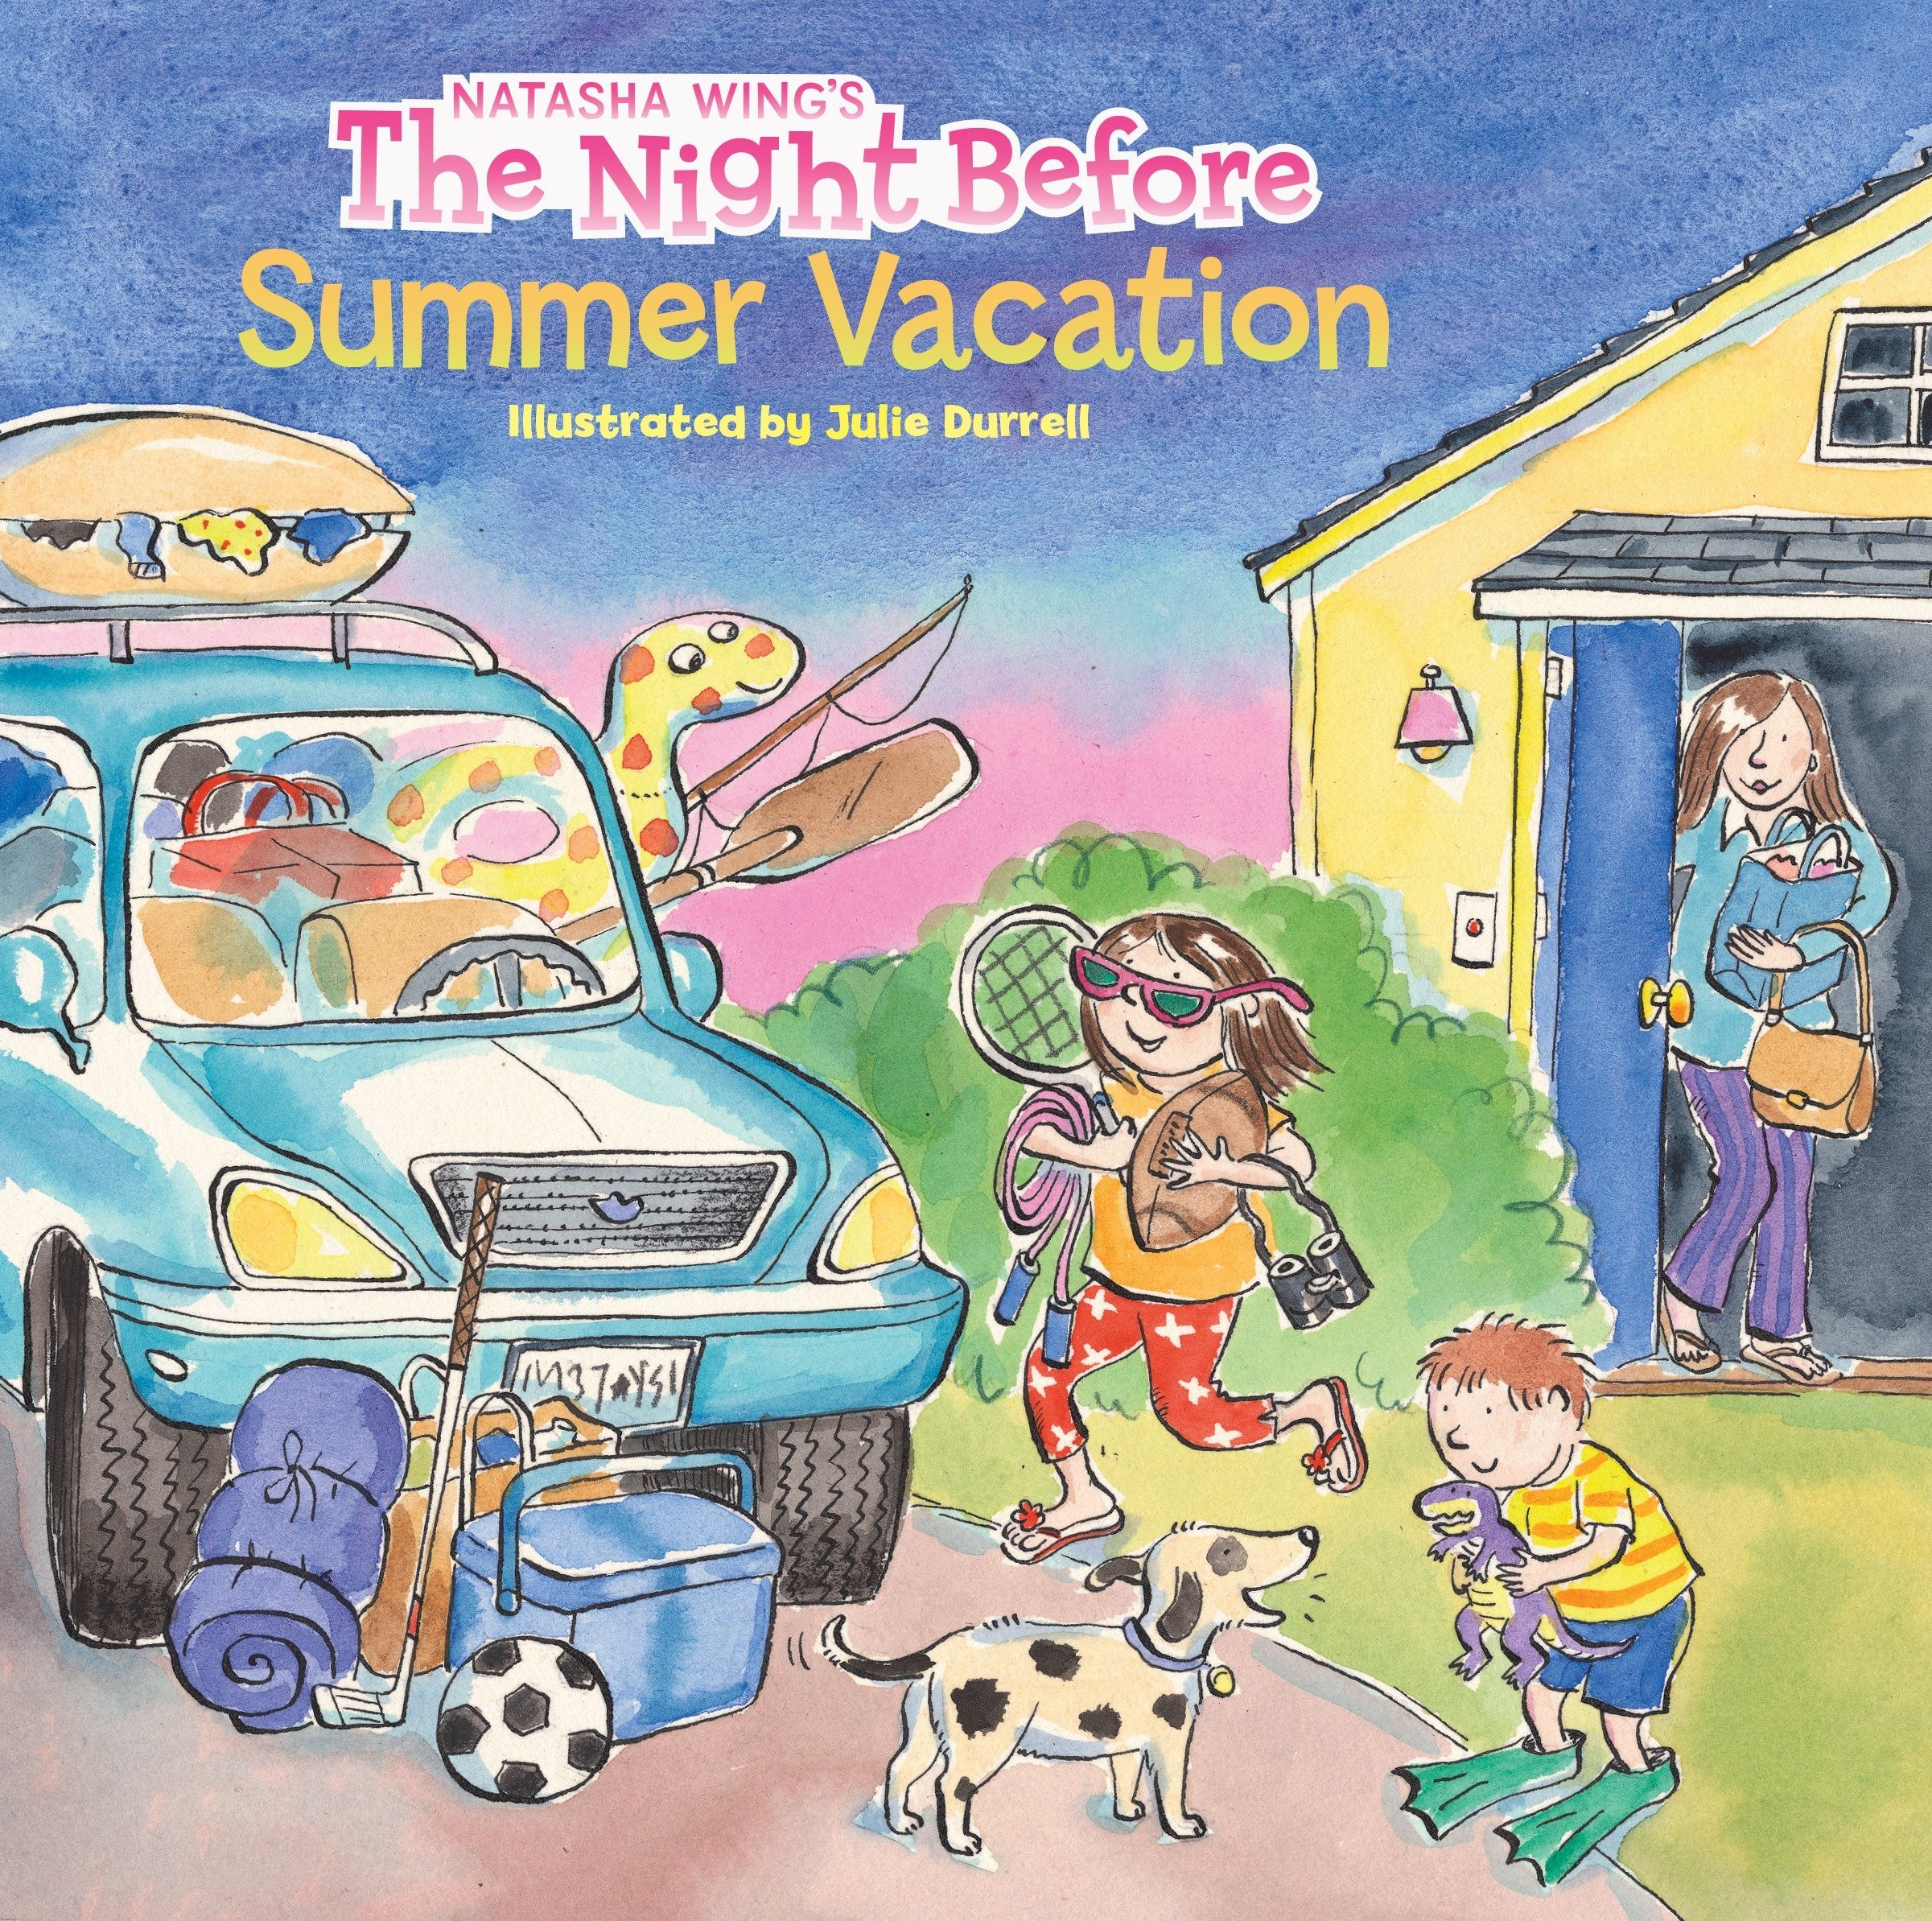 Amazon.com: The Night Before Summer Vacation (9780448428307): Wing ...